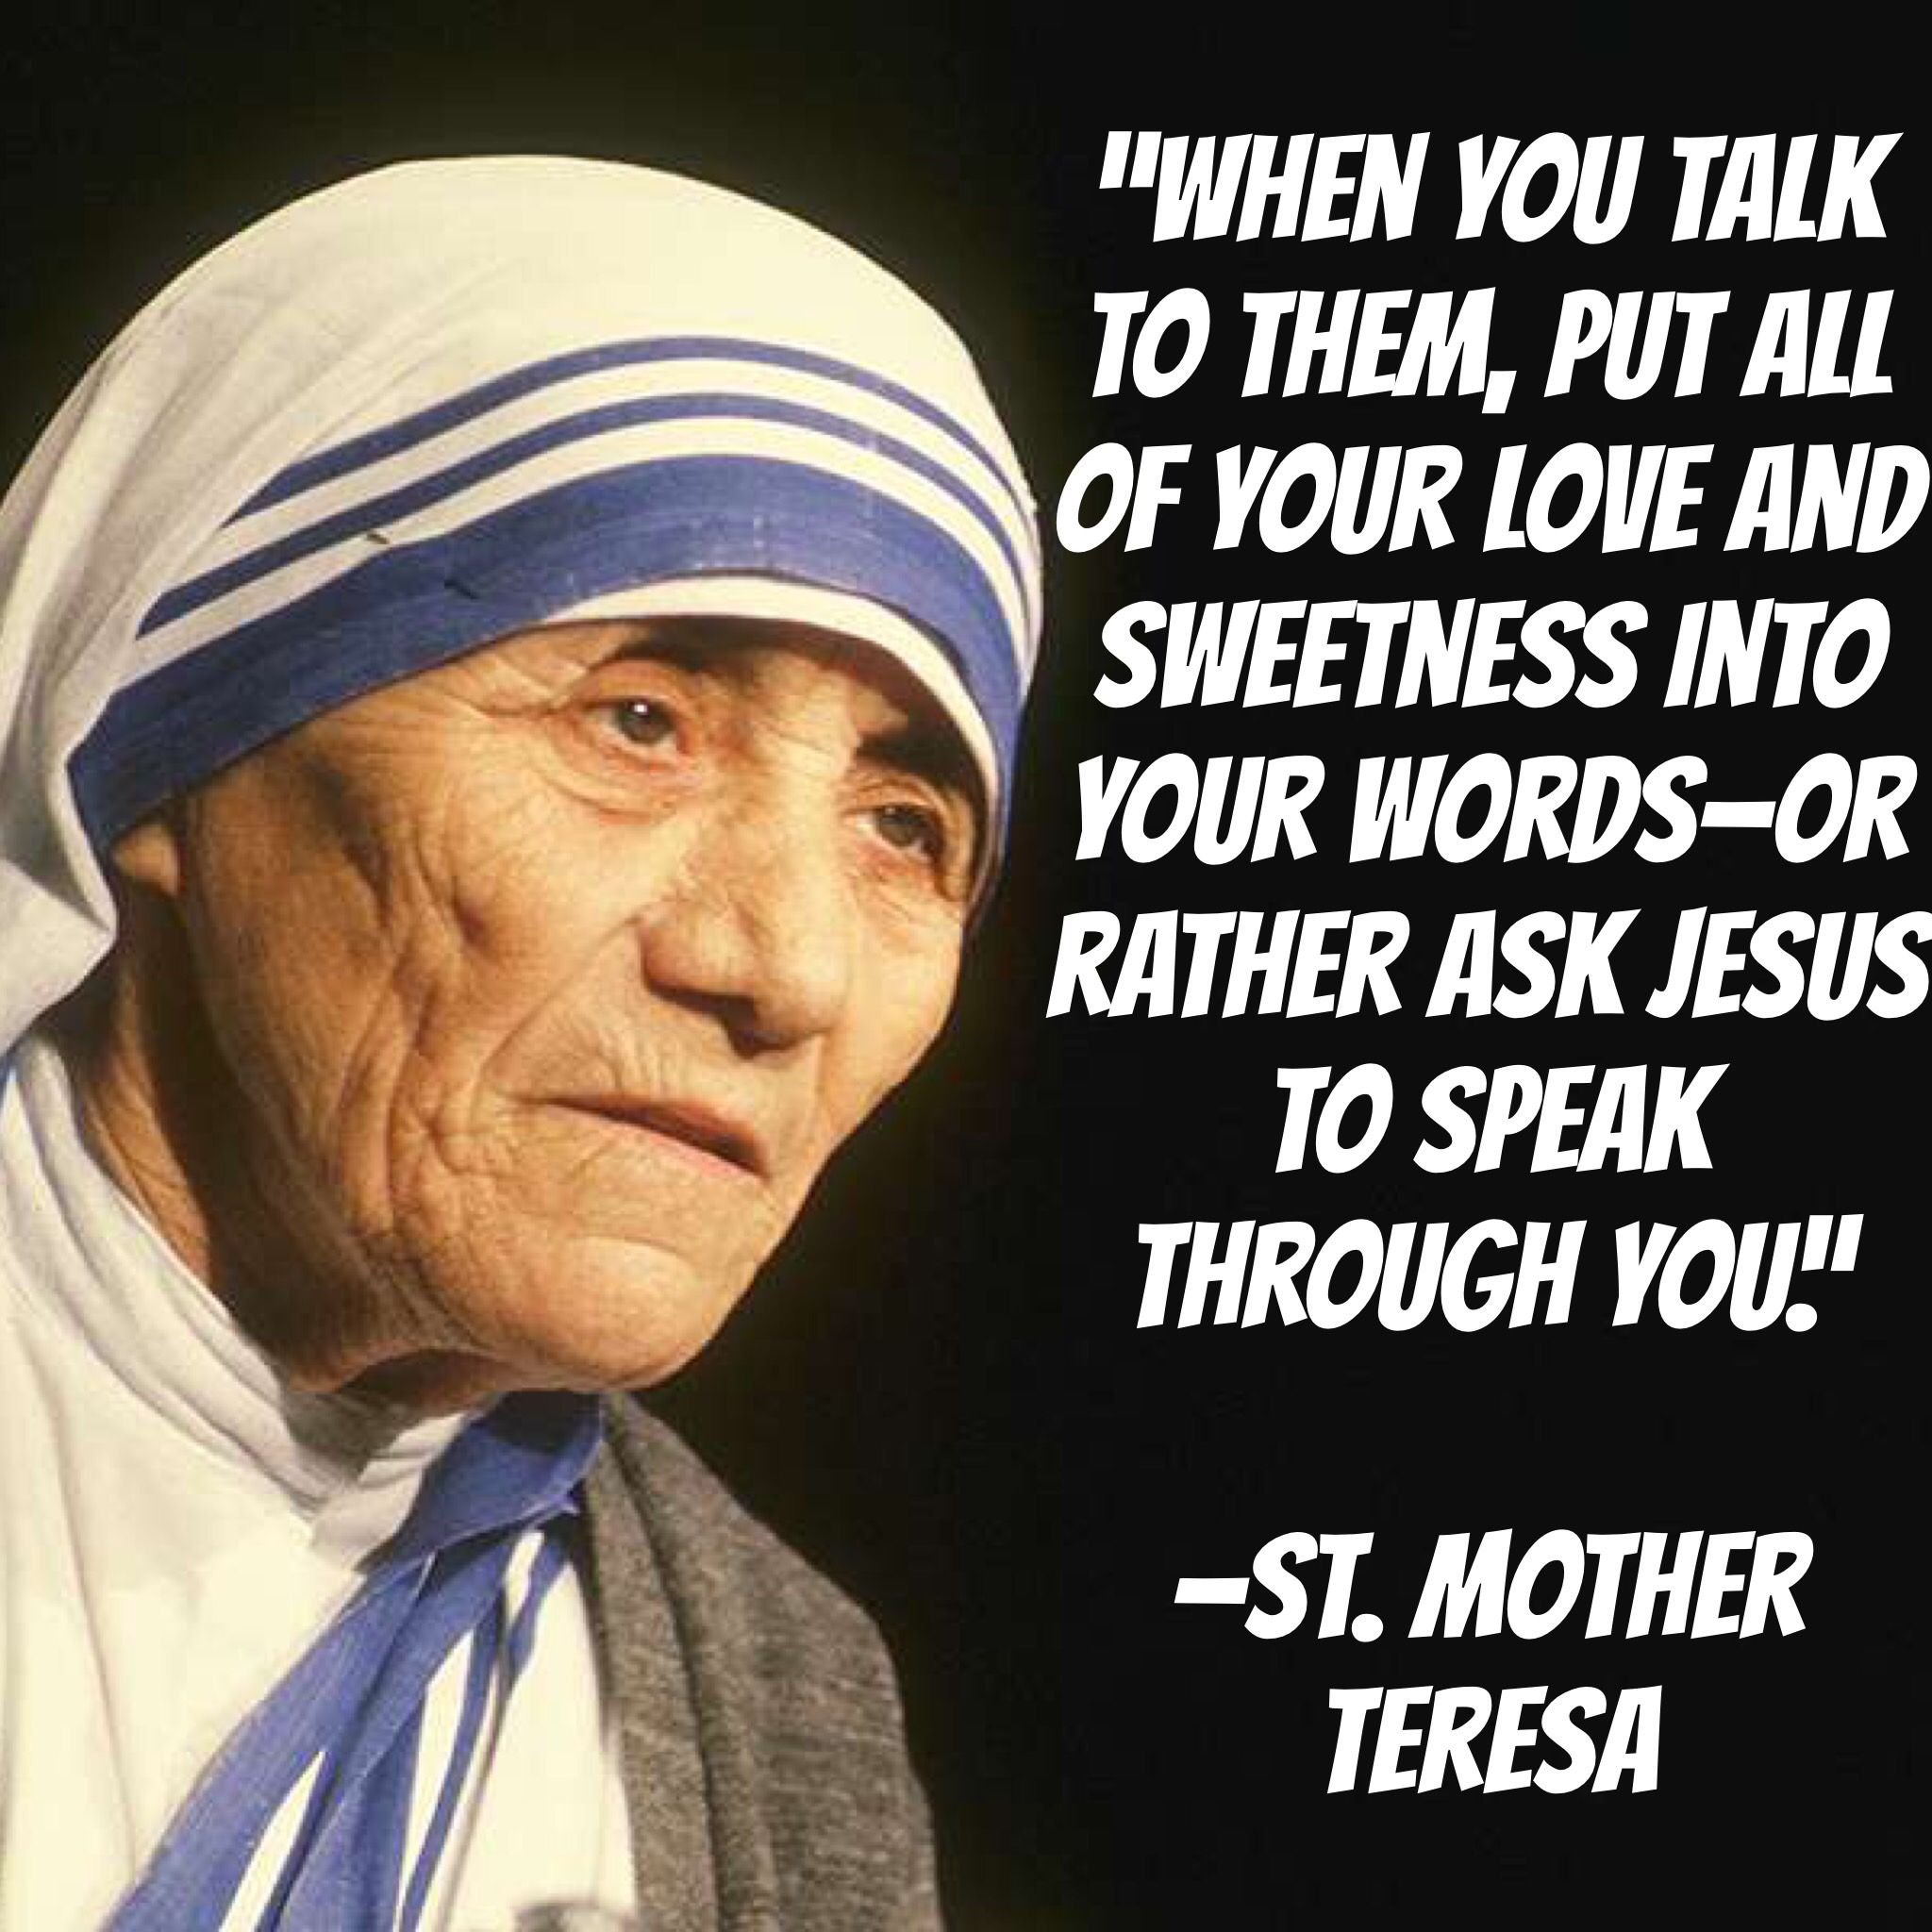 Mother Teresa of Calcutta Quote 24x36 poster Saint Missionary Nobel Peace Prize!